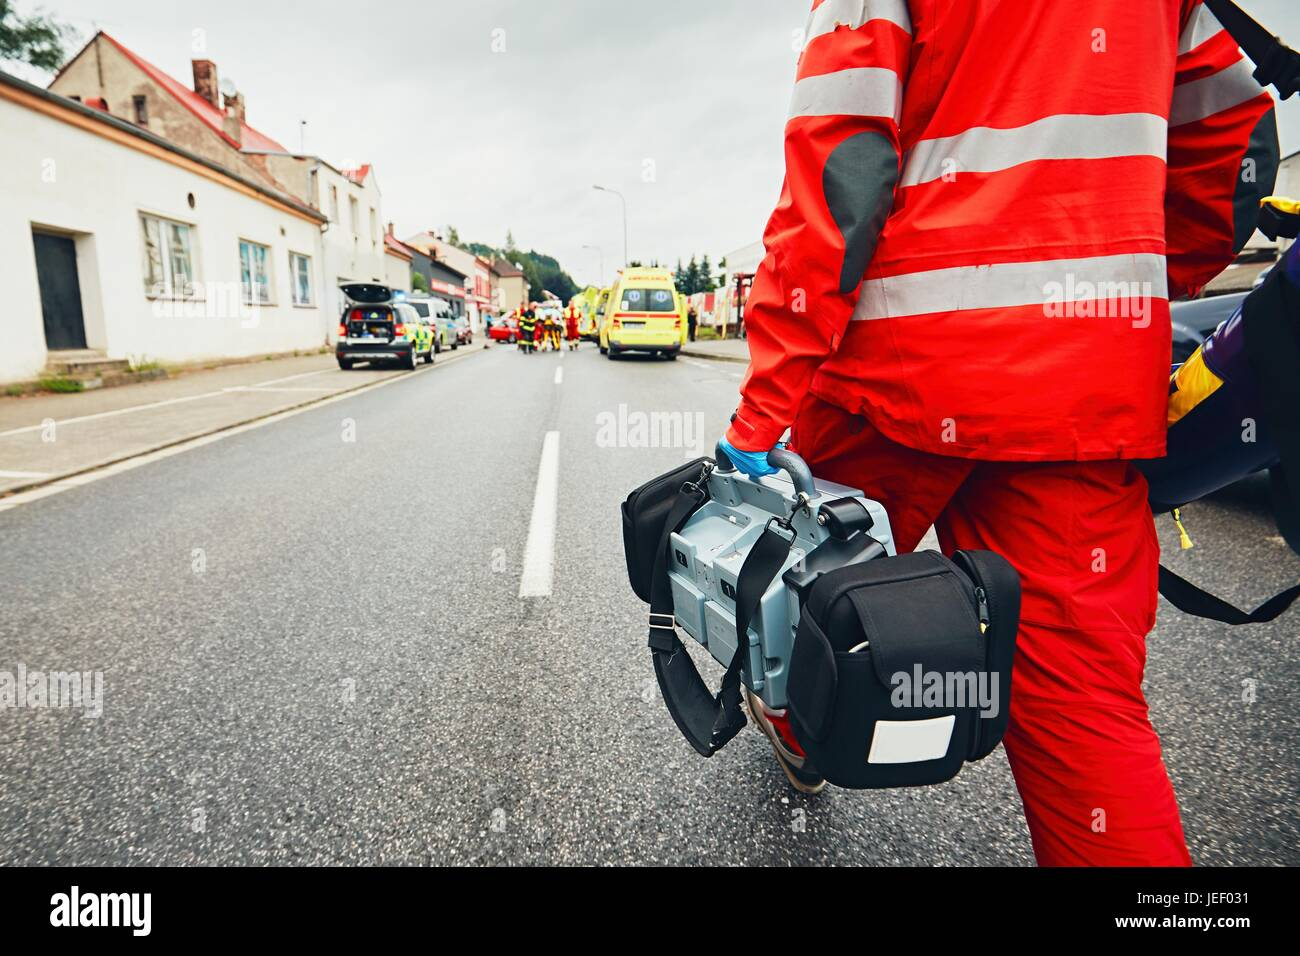 Hand of the doctor with defibrillator. Teams of the Emergency medical service are responding to an traffic accident. Stock Photo